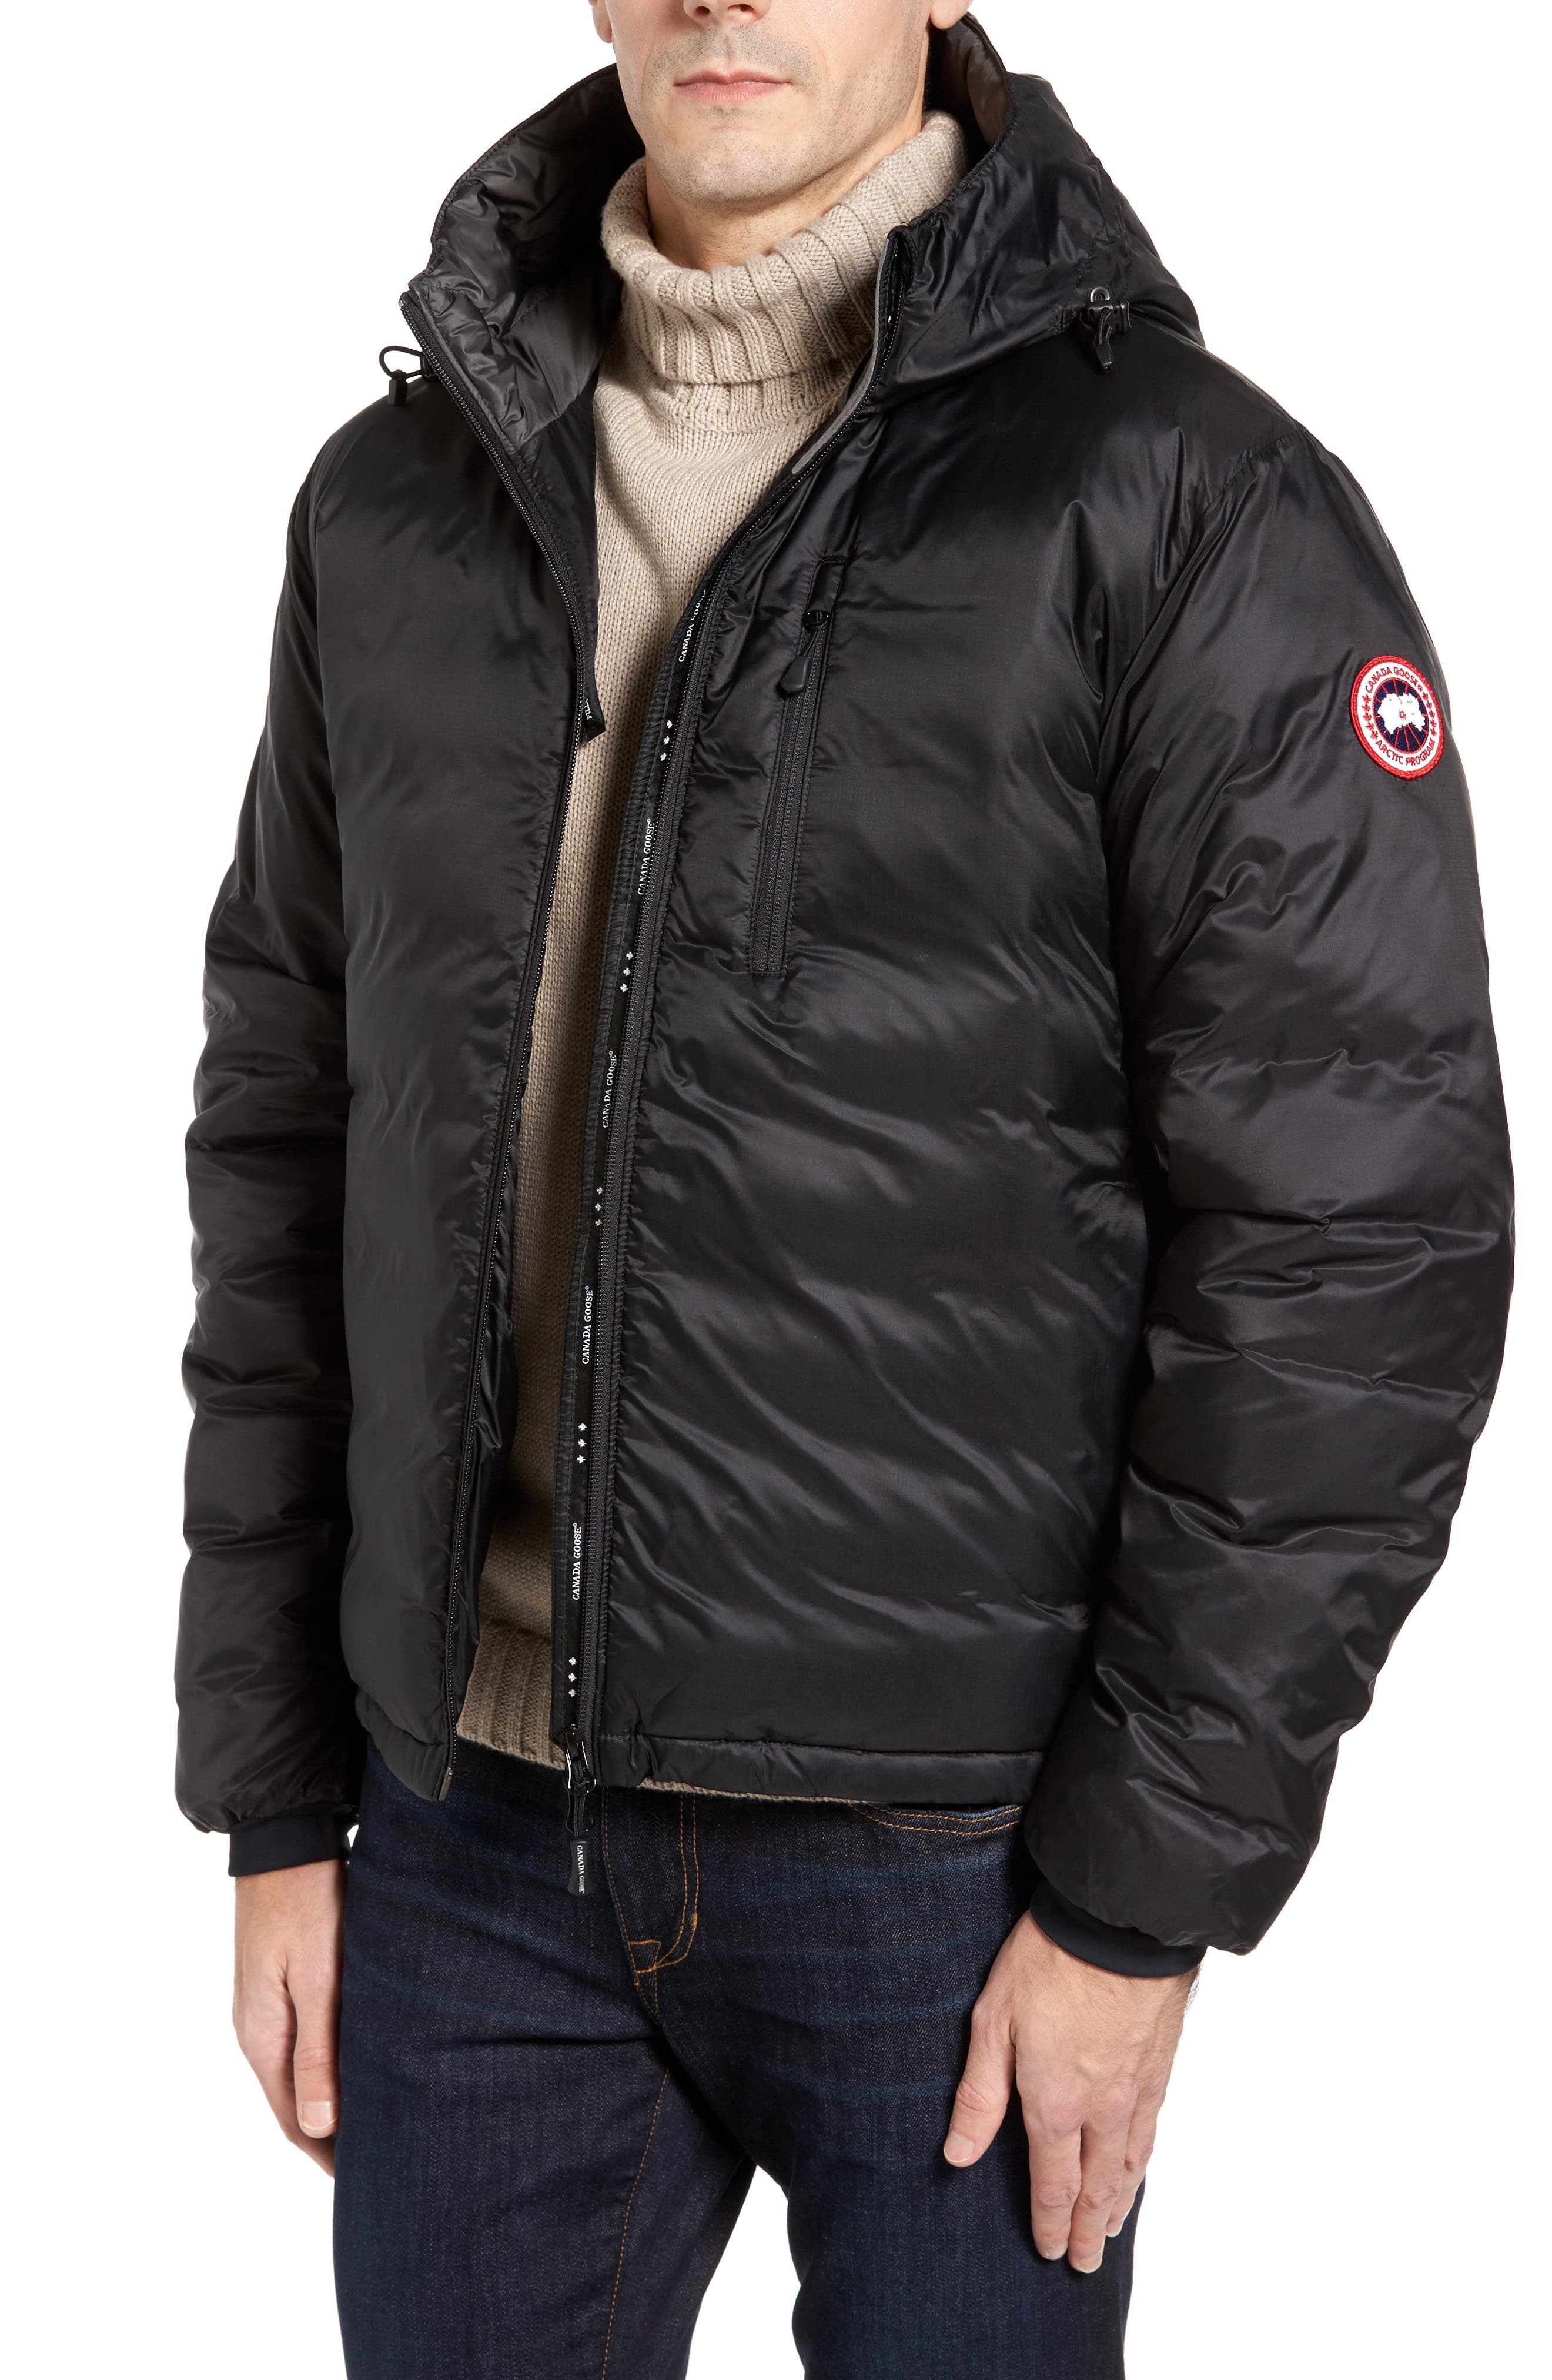 Lodge Packable Down Jacket,                         Main,                         color, Black/ Black